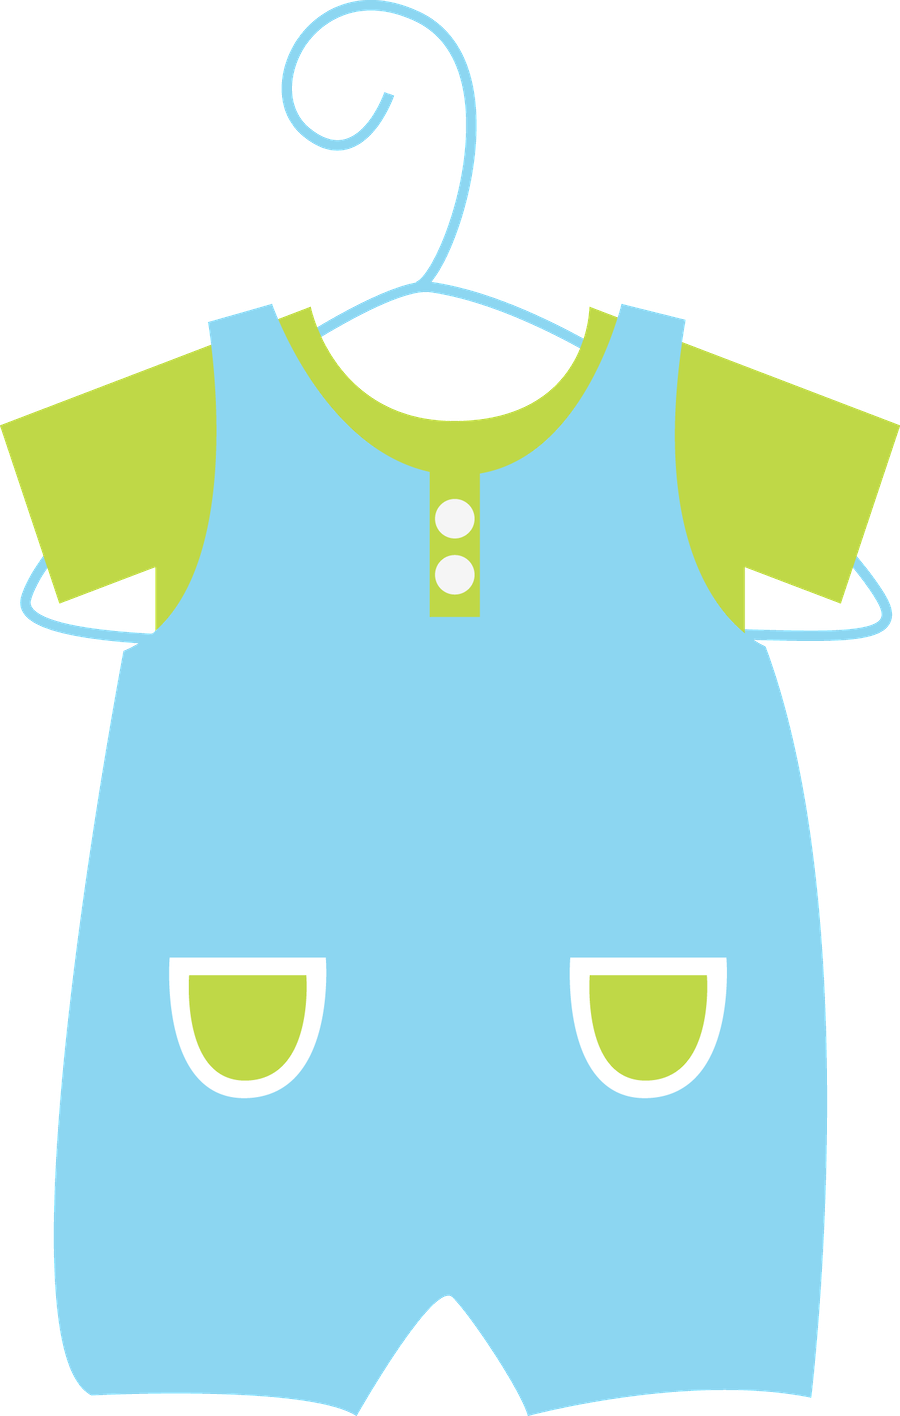 baby clothes clipart png